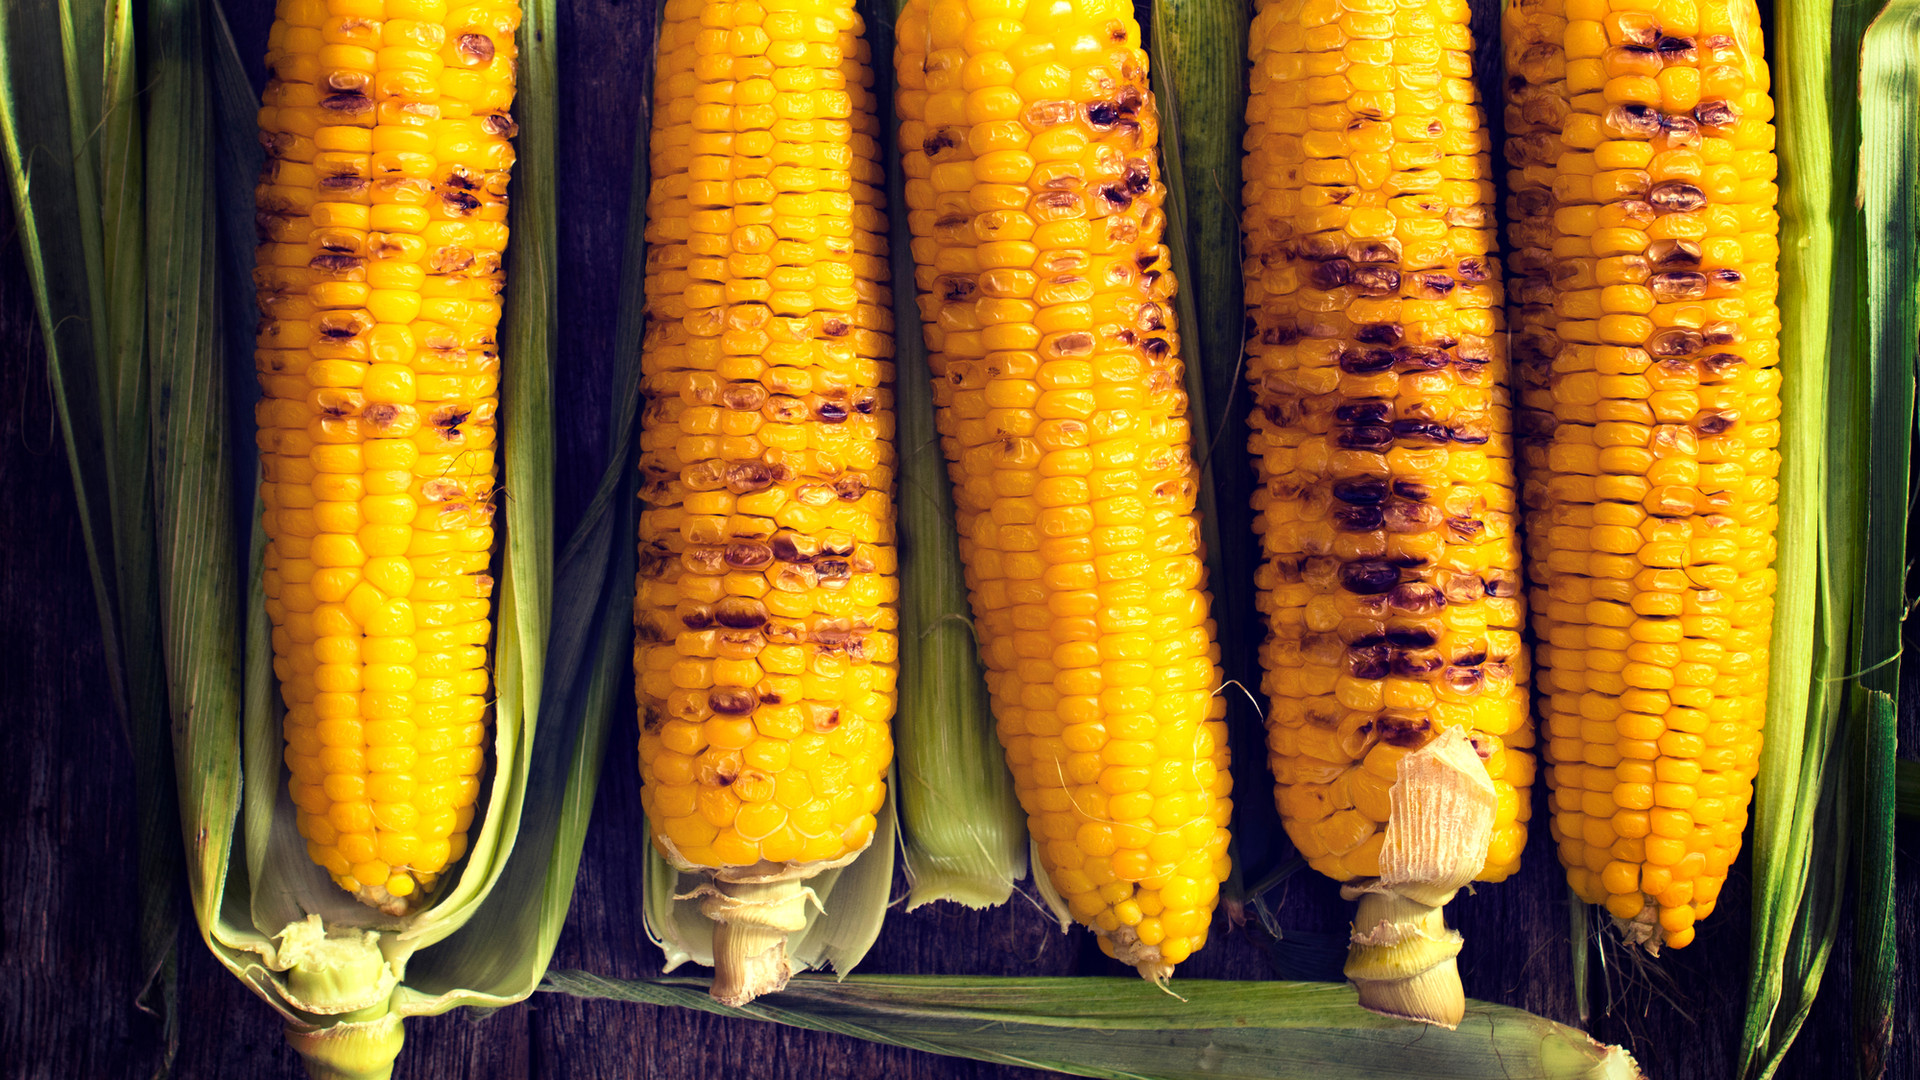 Summer/Autumn - Roasted Sweet Corn